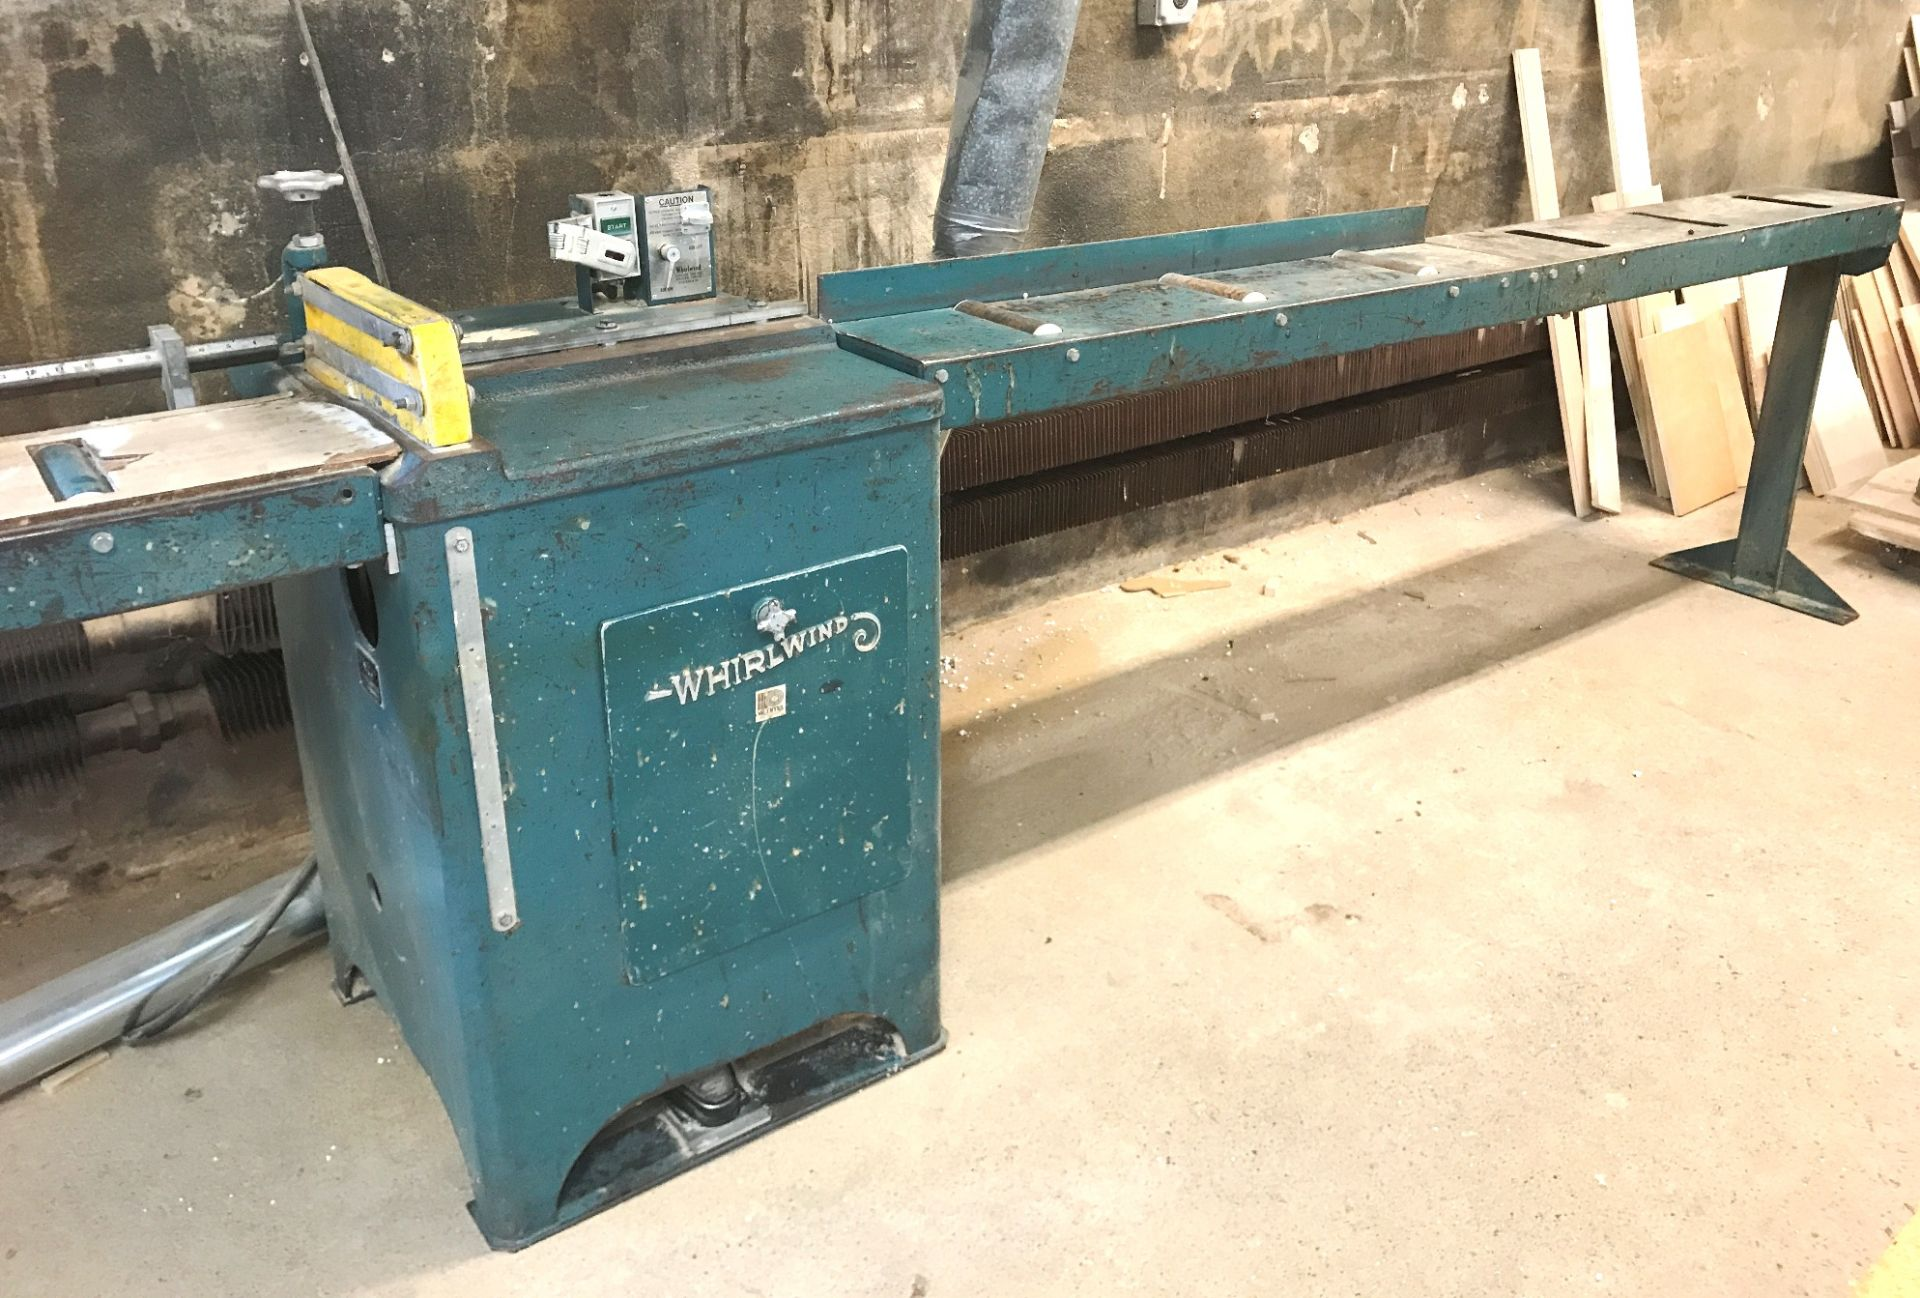 Whirlwind Mod.100L Cut Off Saw - Image 2 of 6